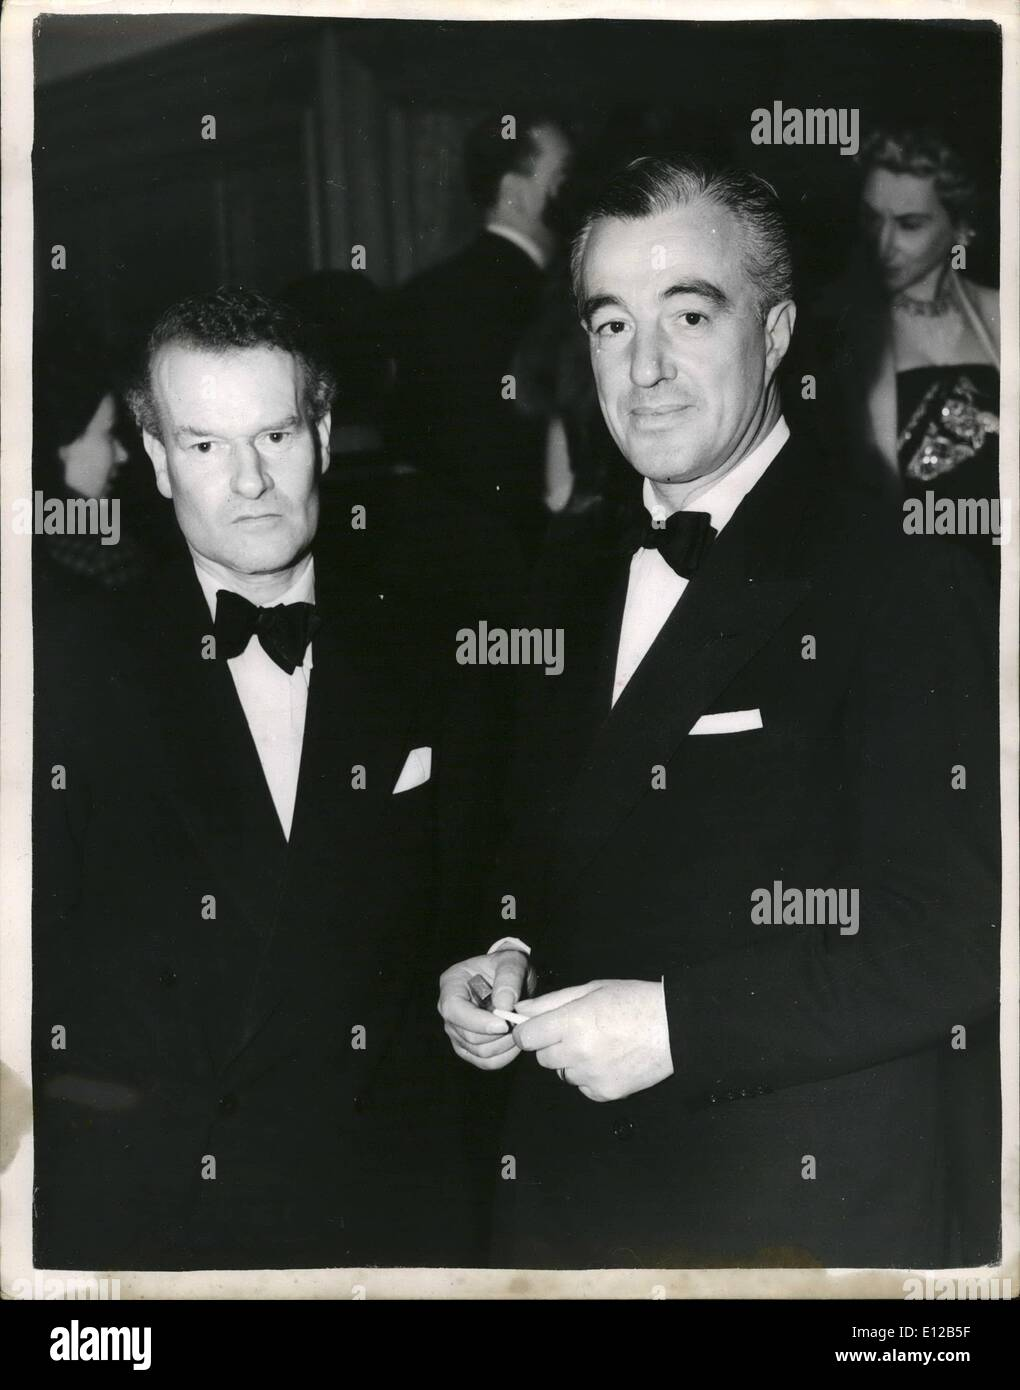 Dec. 09, 2011 - Italian Producer Attends Premiere Of 'The Net'' Vittoria de Sica; Photo Shows Vittorio de Sica the award winning Italian film producer - seen when he arrived at the Odeon, Leicester Square, last evening for the premiere of the film ''The Net' - Stock Image